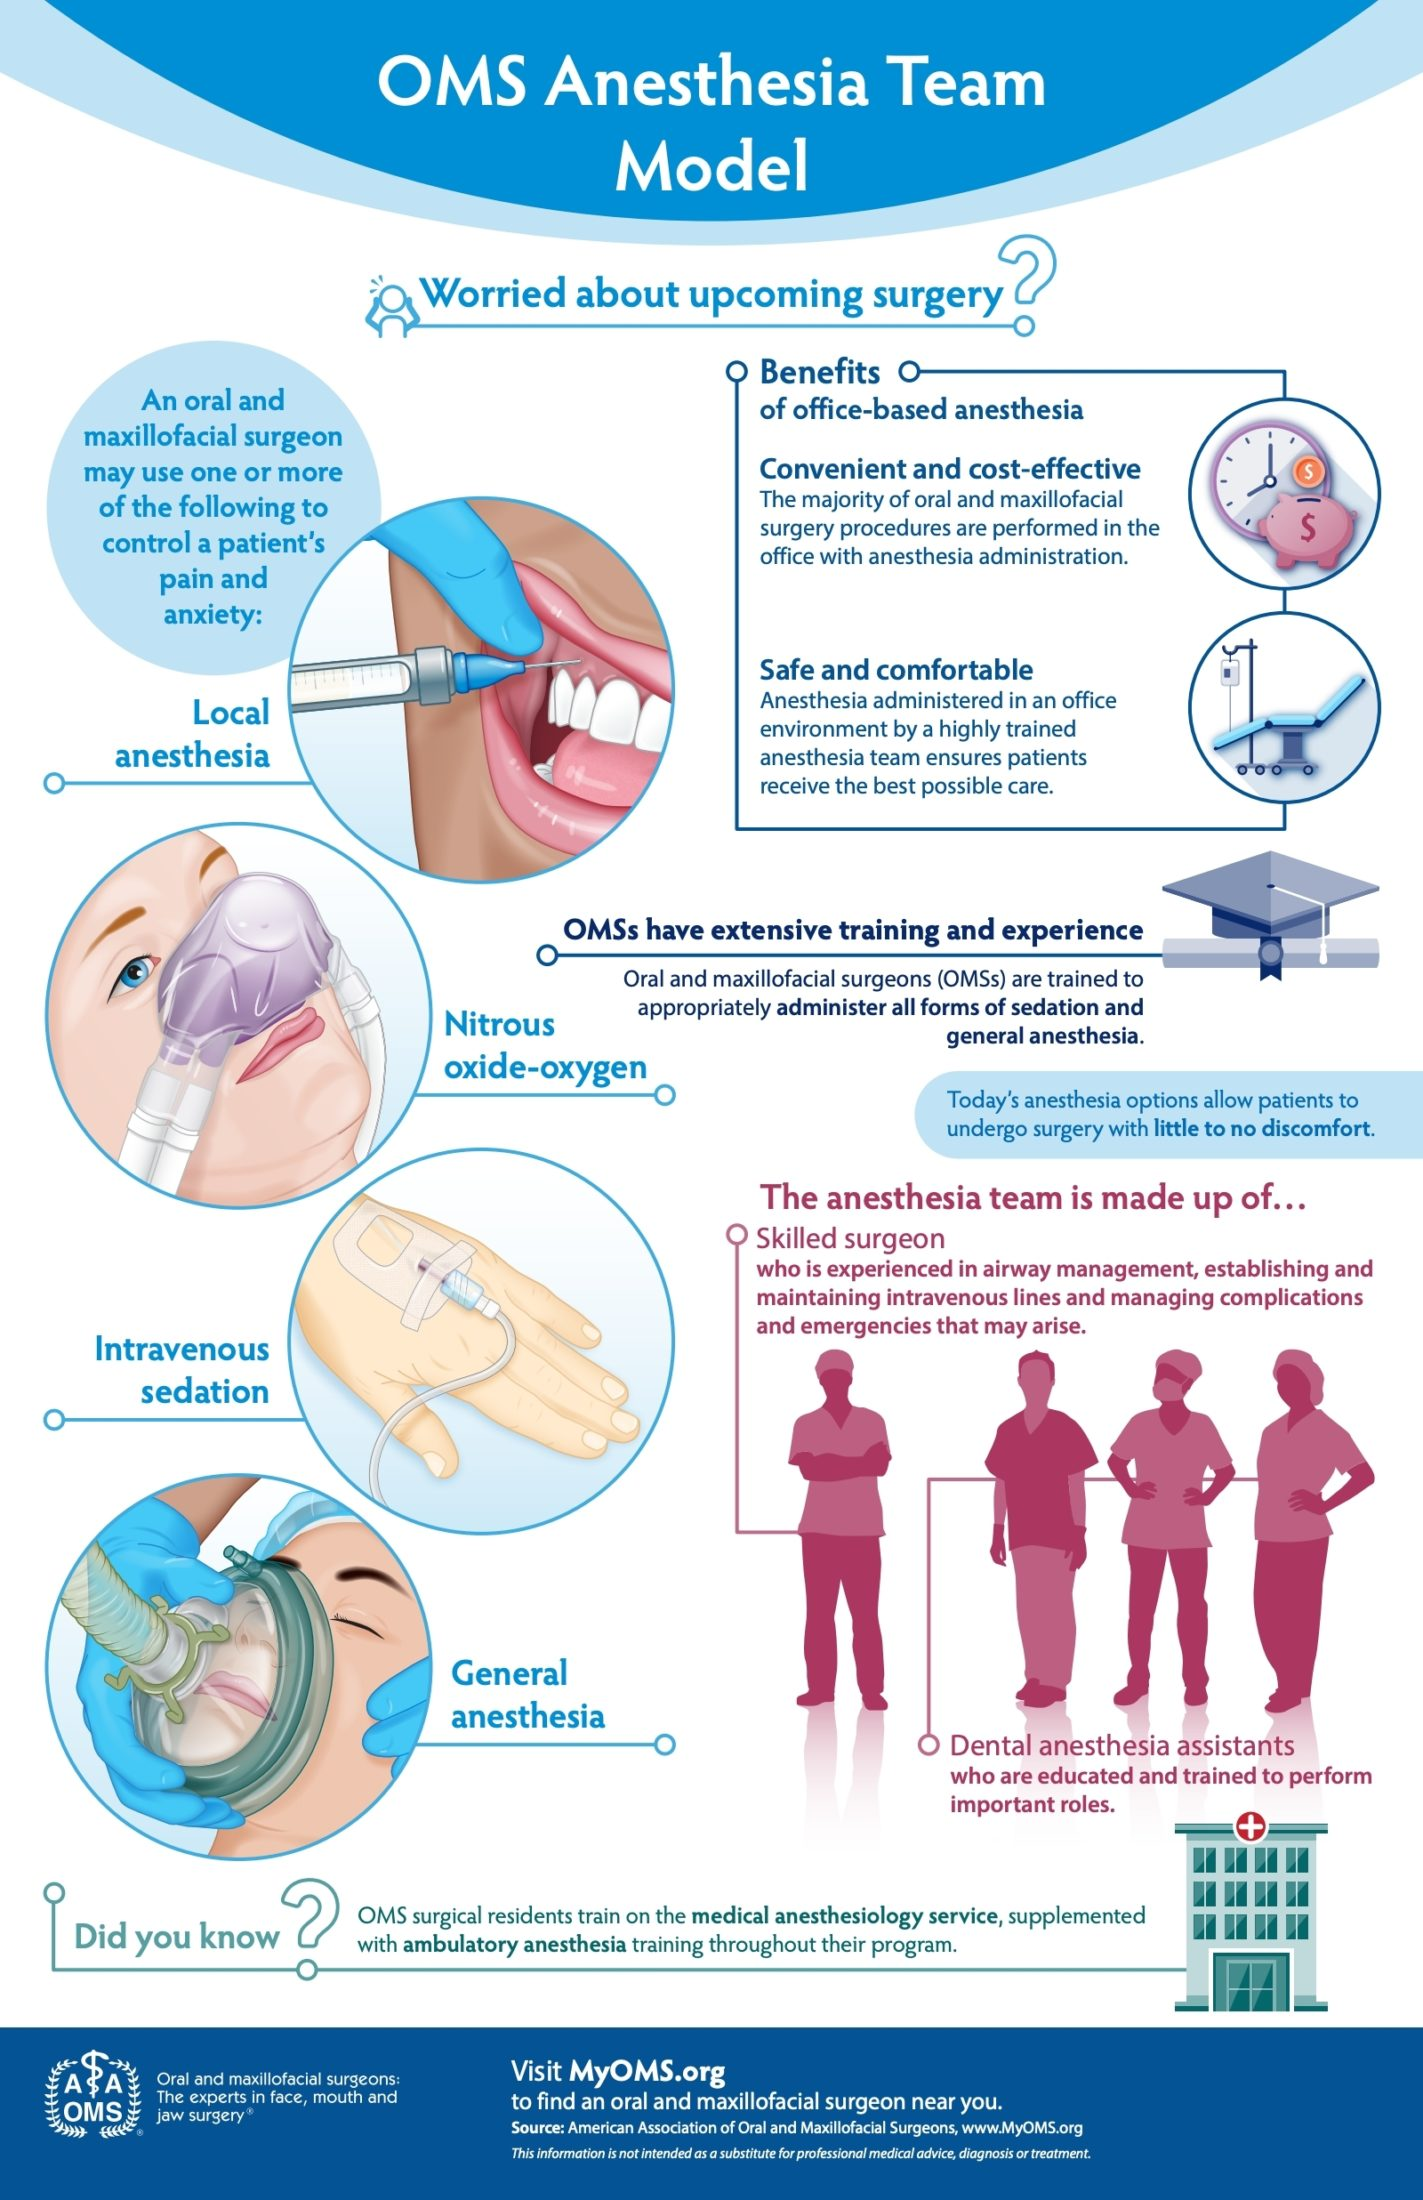 OMS Anesthesia Team Model Infographic